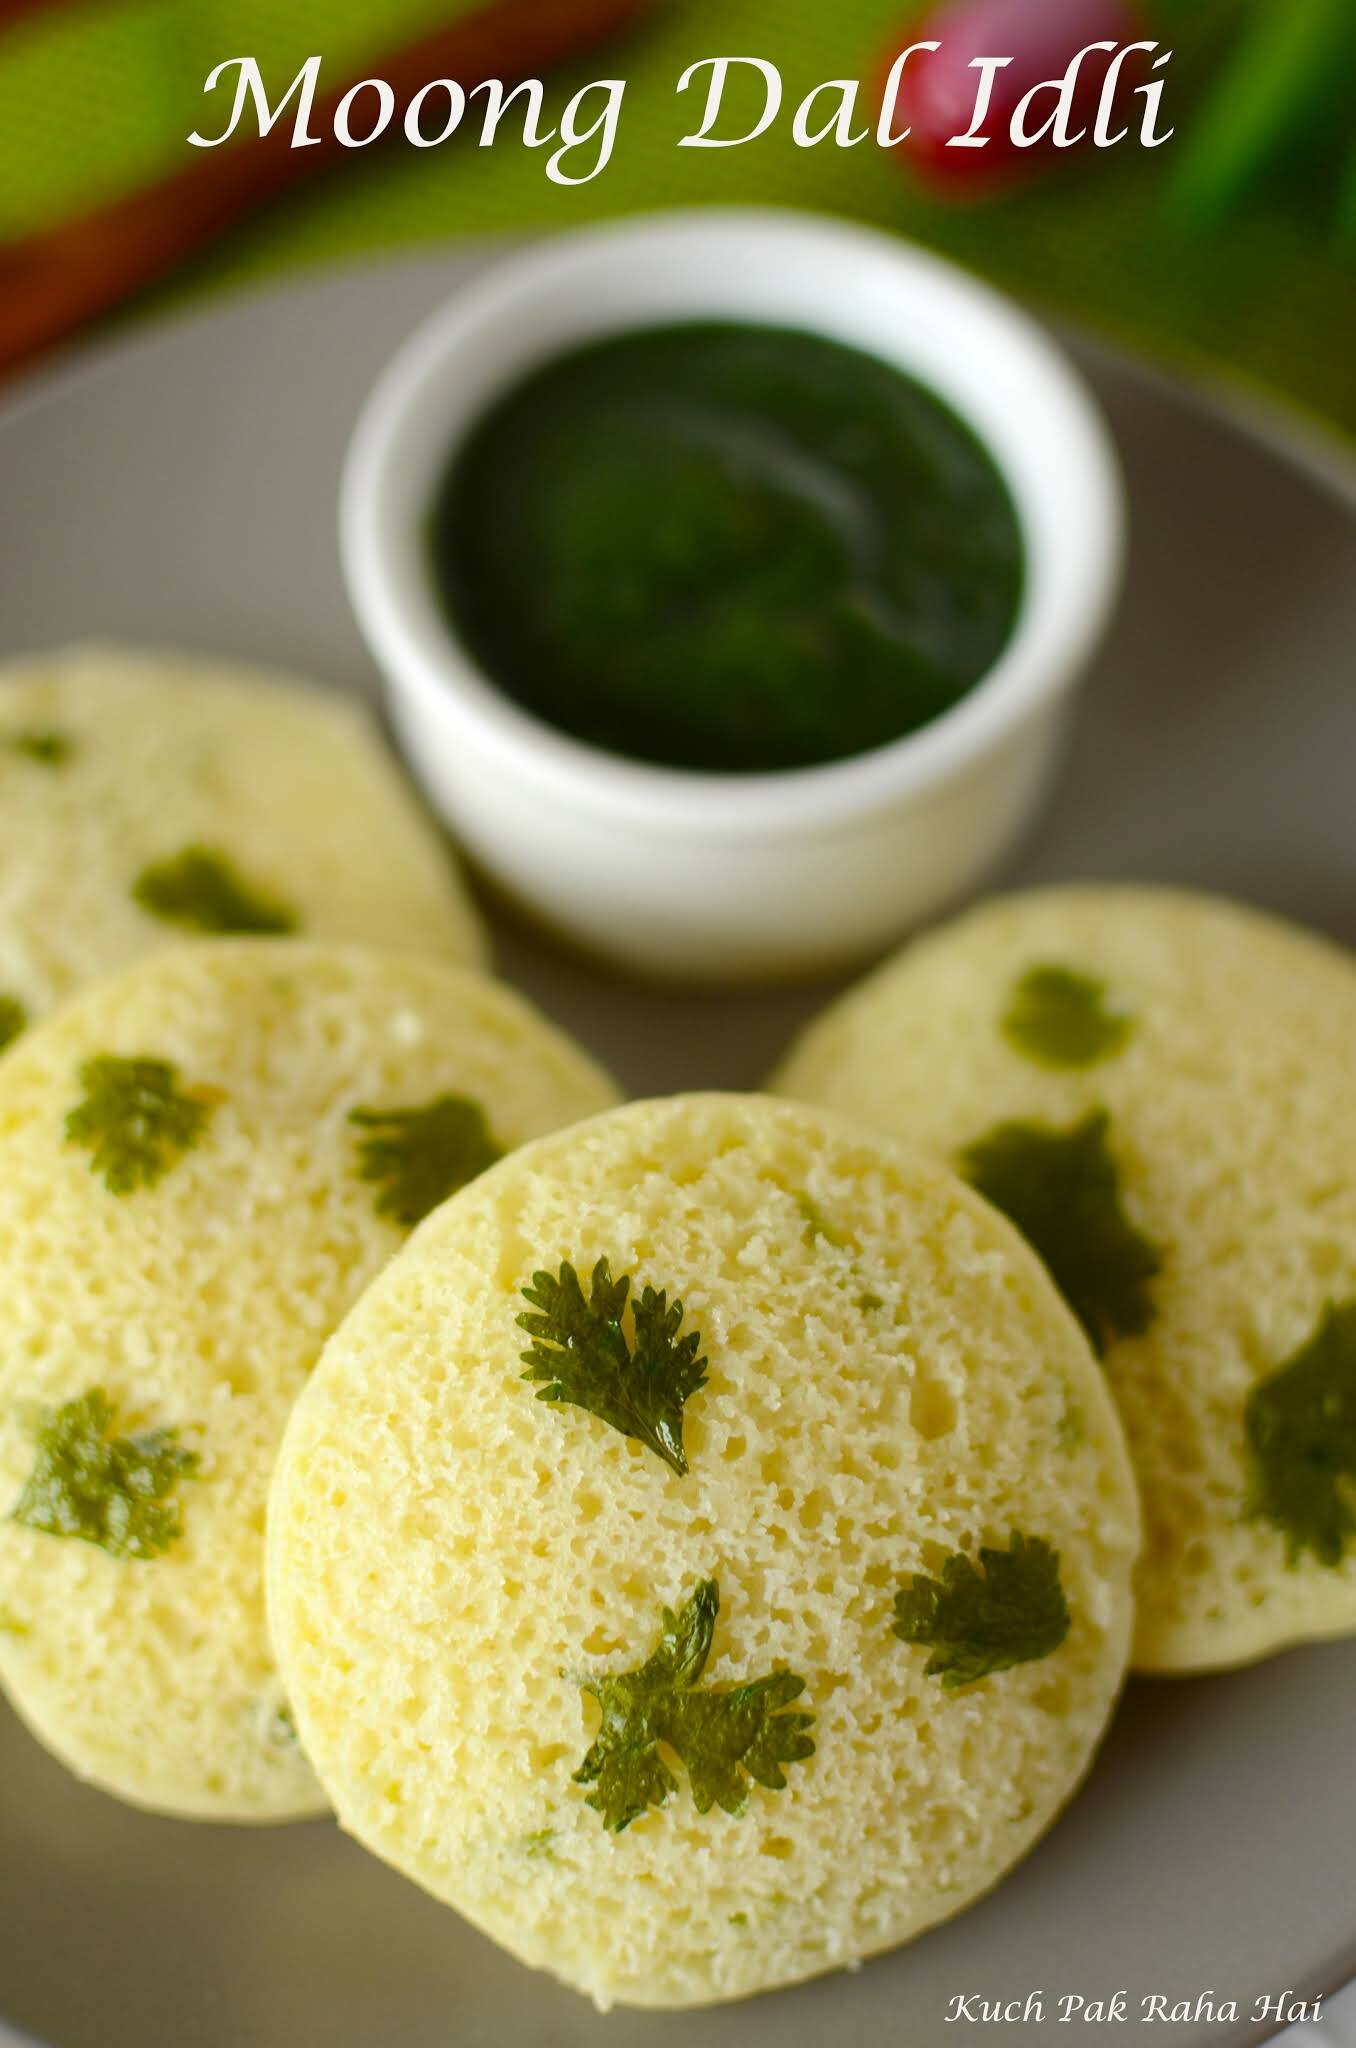 Instant Moong Dal Idli recipe made without rice & no fermentation.